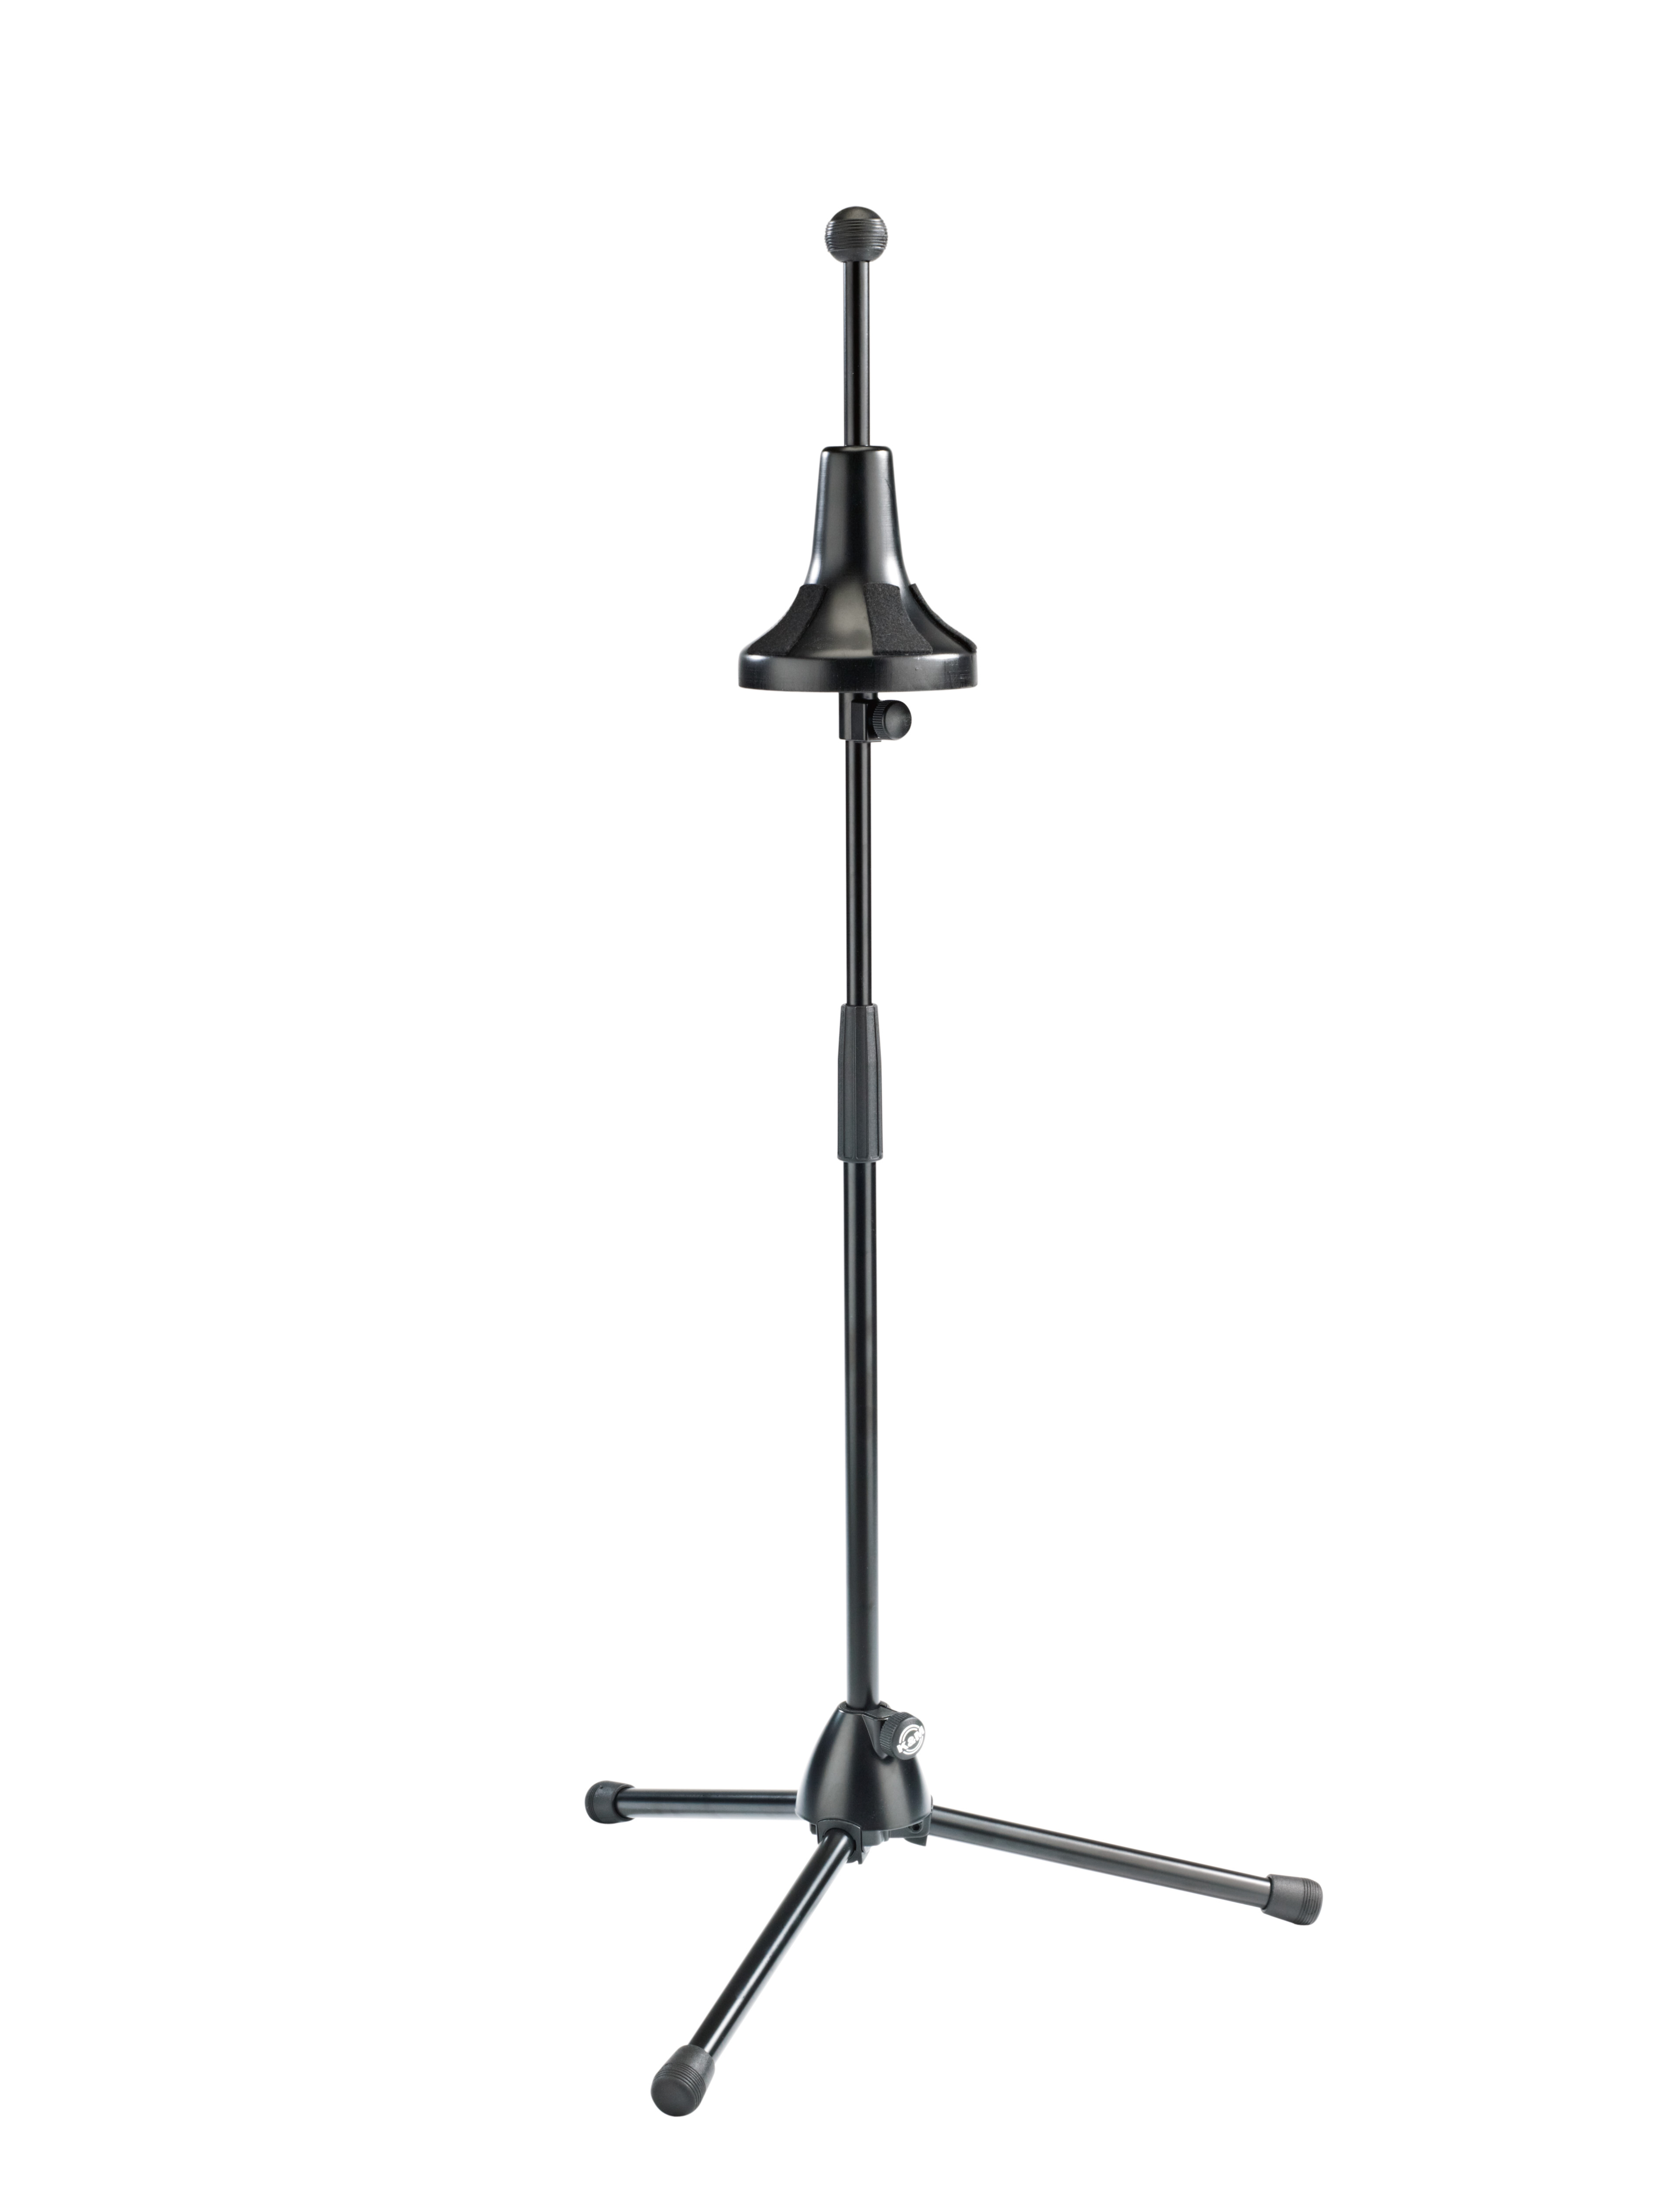 Bass Trombone Stand by Konig and Meyer